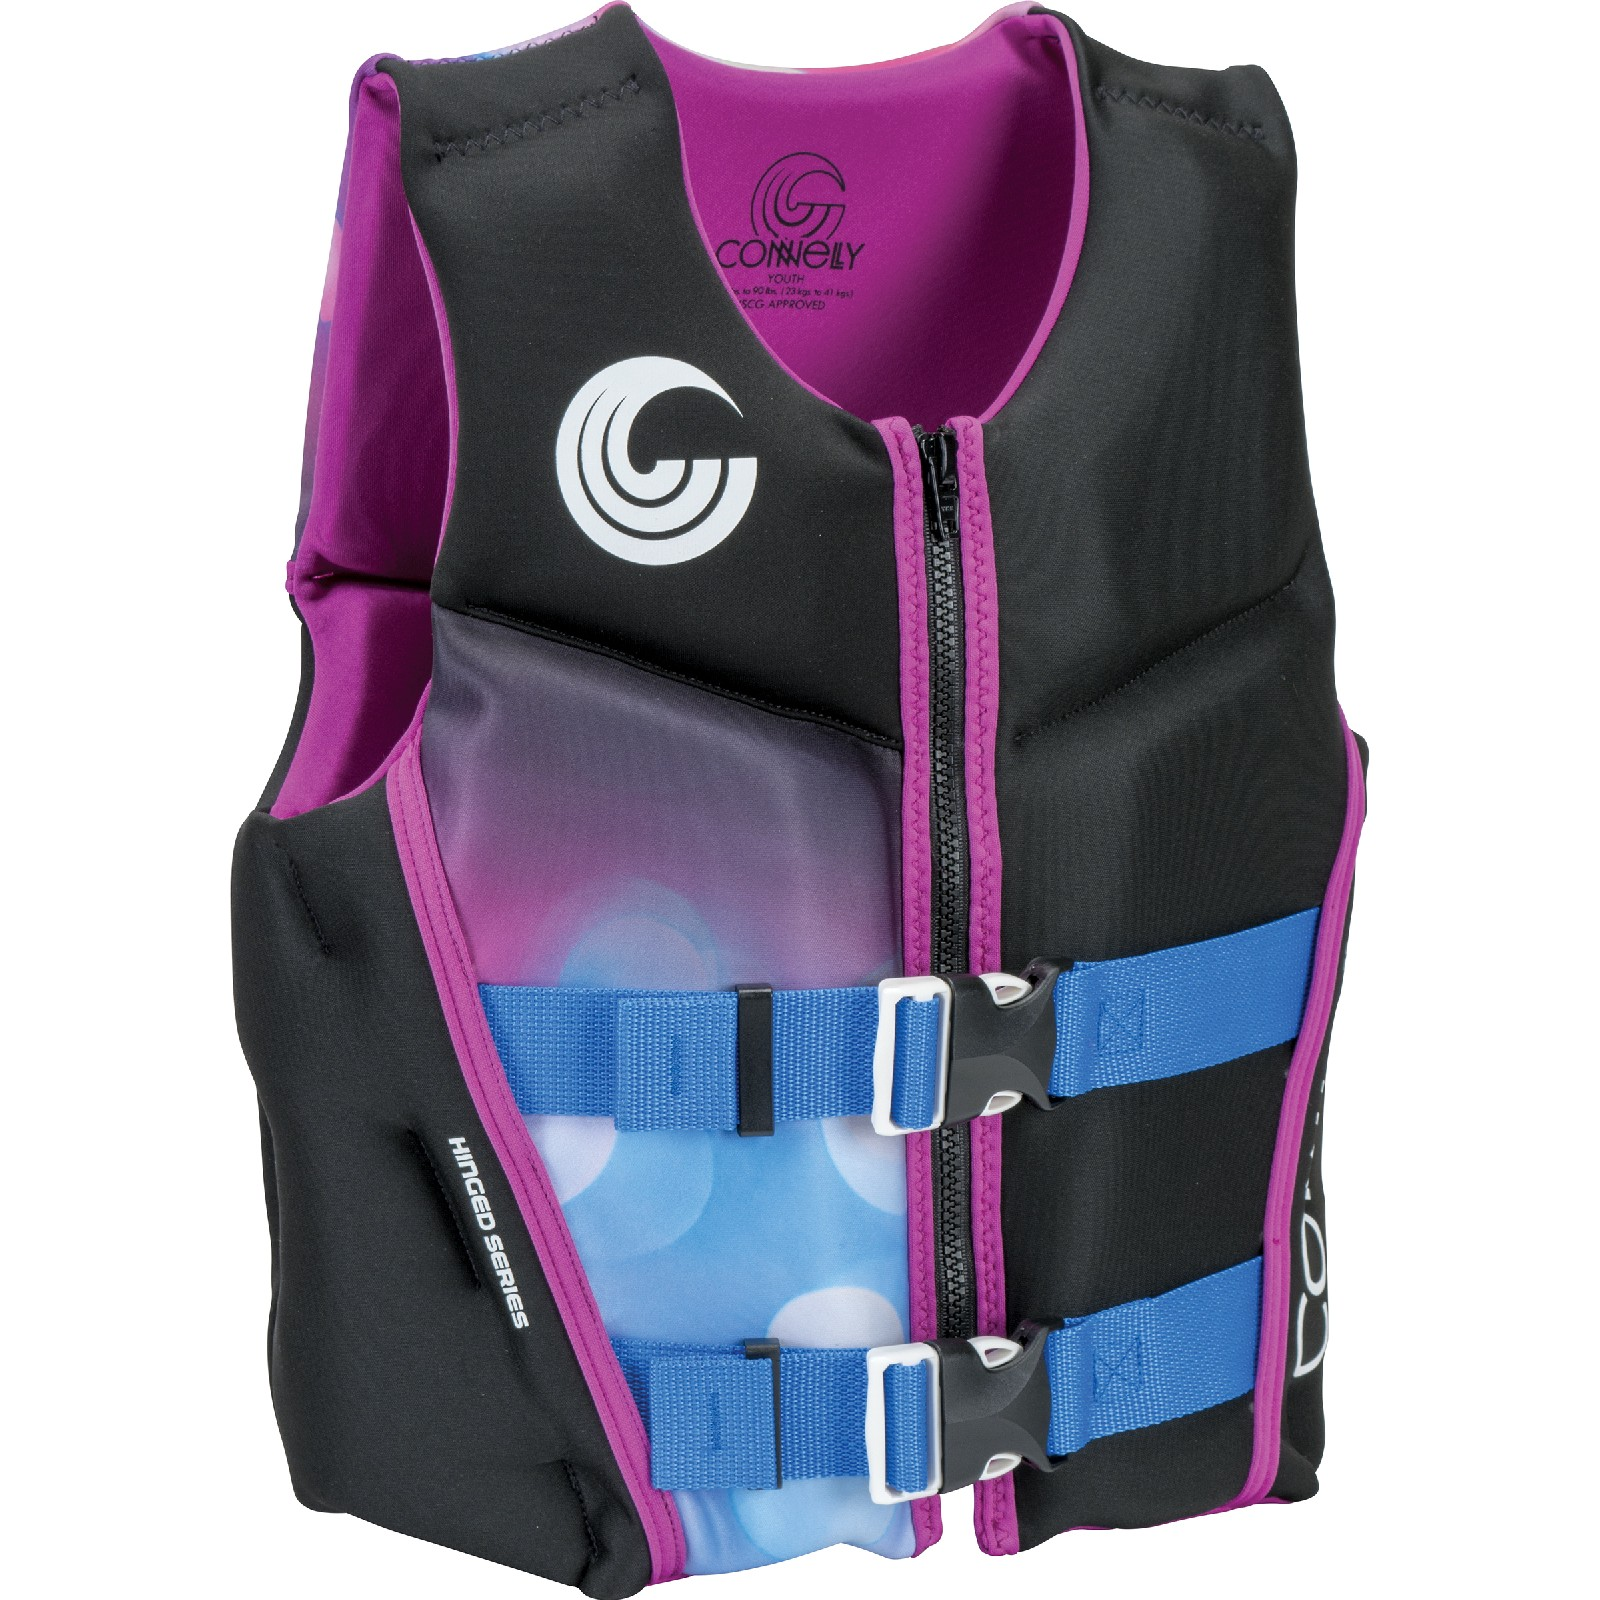 GIRL'S CLASSIC NEO LIFE VEST - YOUTH 22-40KG CONNELLY 2019